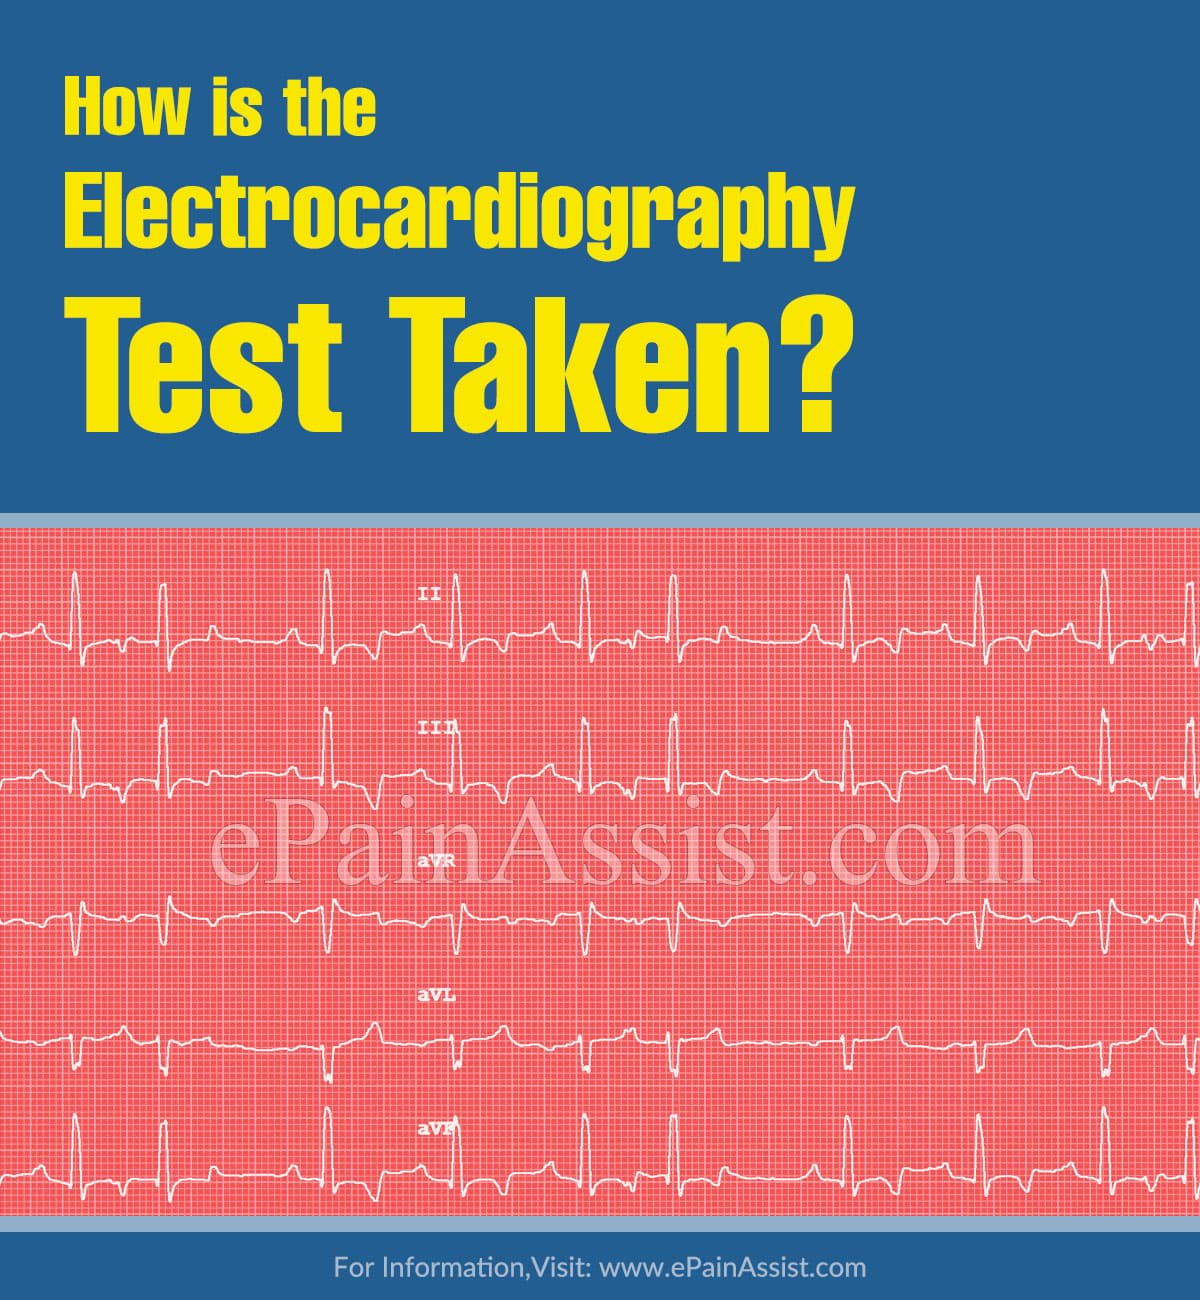 How is the Electrocardiography Test Taken?